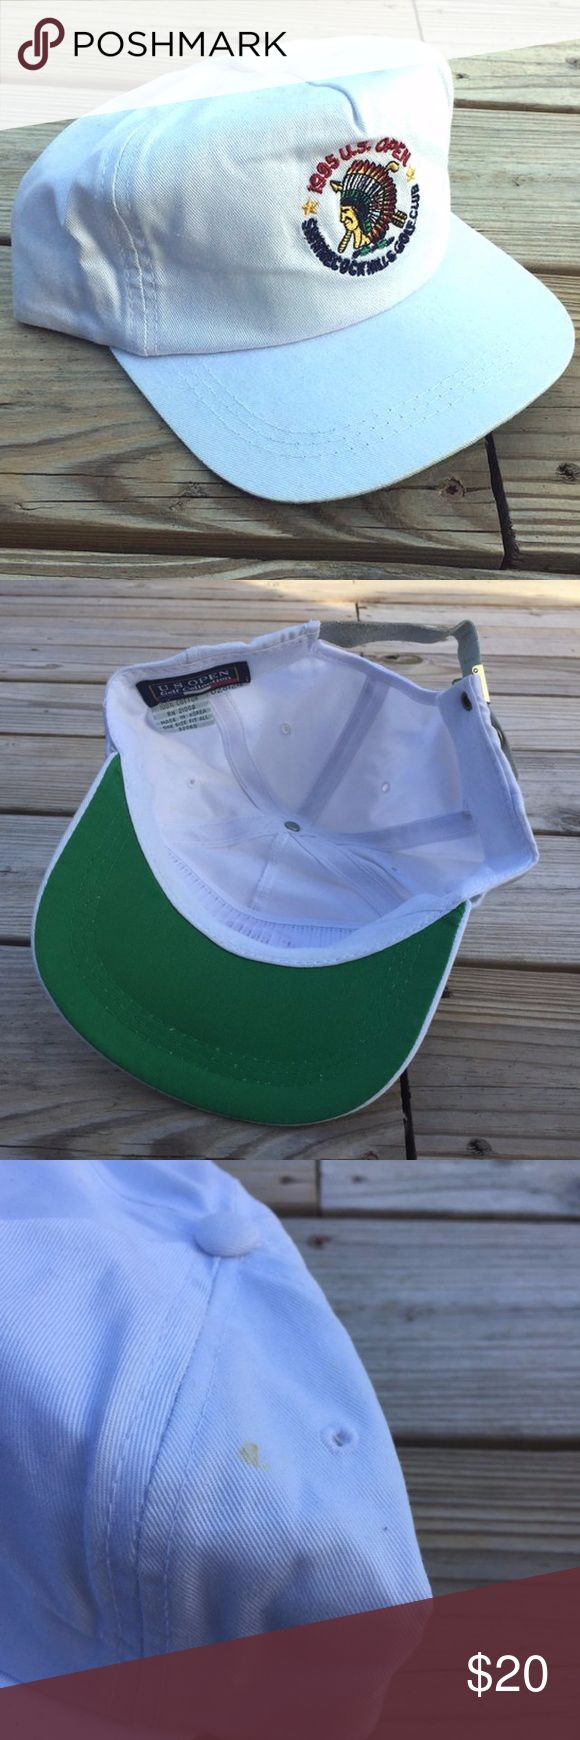 Vintage 90s 1995 US Open Strapback Hat Vintage 90s 1995 US Open Strapback Hat  Great pre-owned condition except minor spot on hat (see photo) and minor wrinkling White Stitched/embroidered design Adjustable leather/poly strap Green underbrim  . . . cap, hat, tennis, fan, gear, fangear, vtg, 1990s Accessories Hats